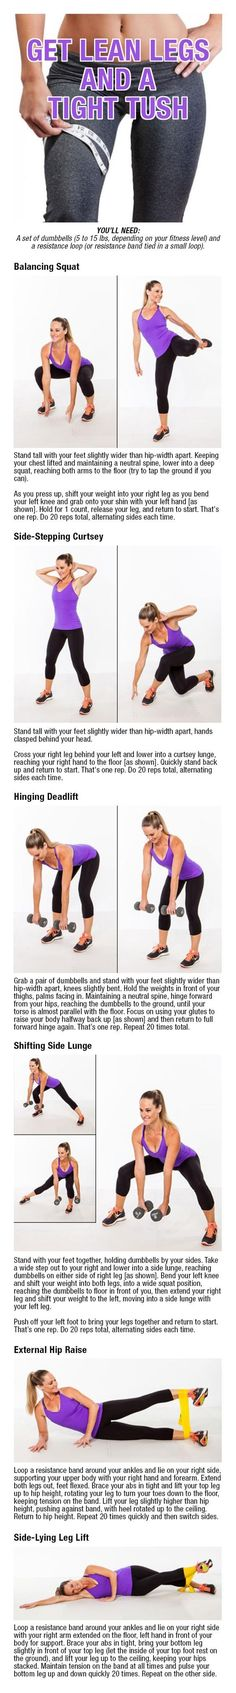 10 Best Exercises For Toning the Butt, Thighs and Legs - EFM